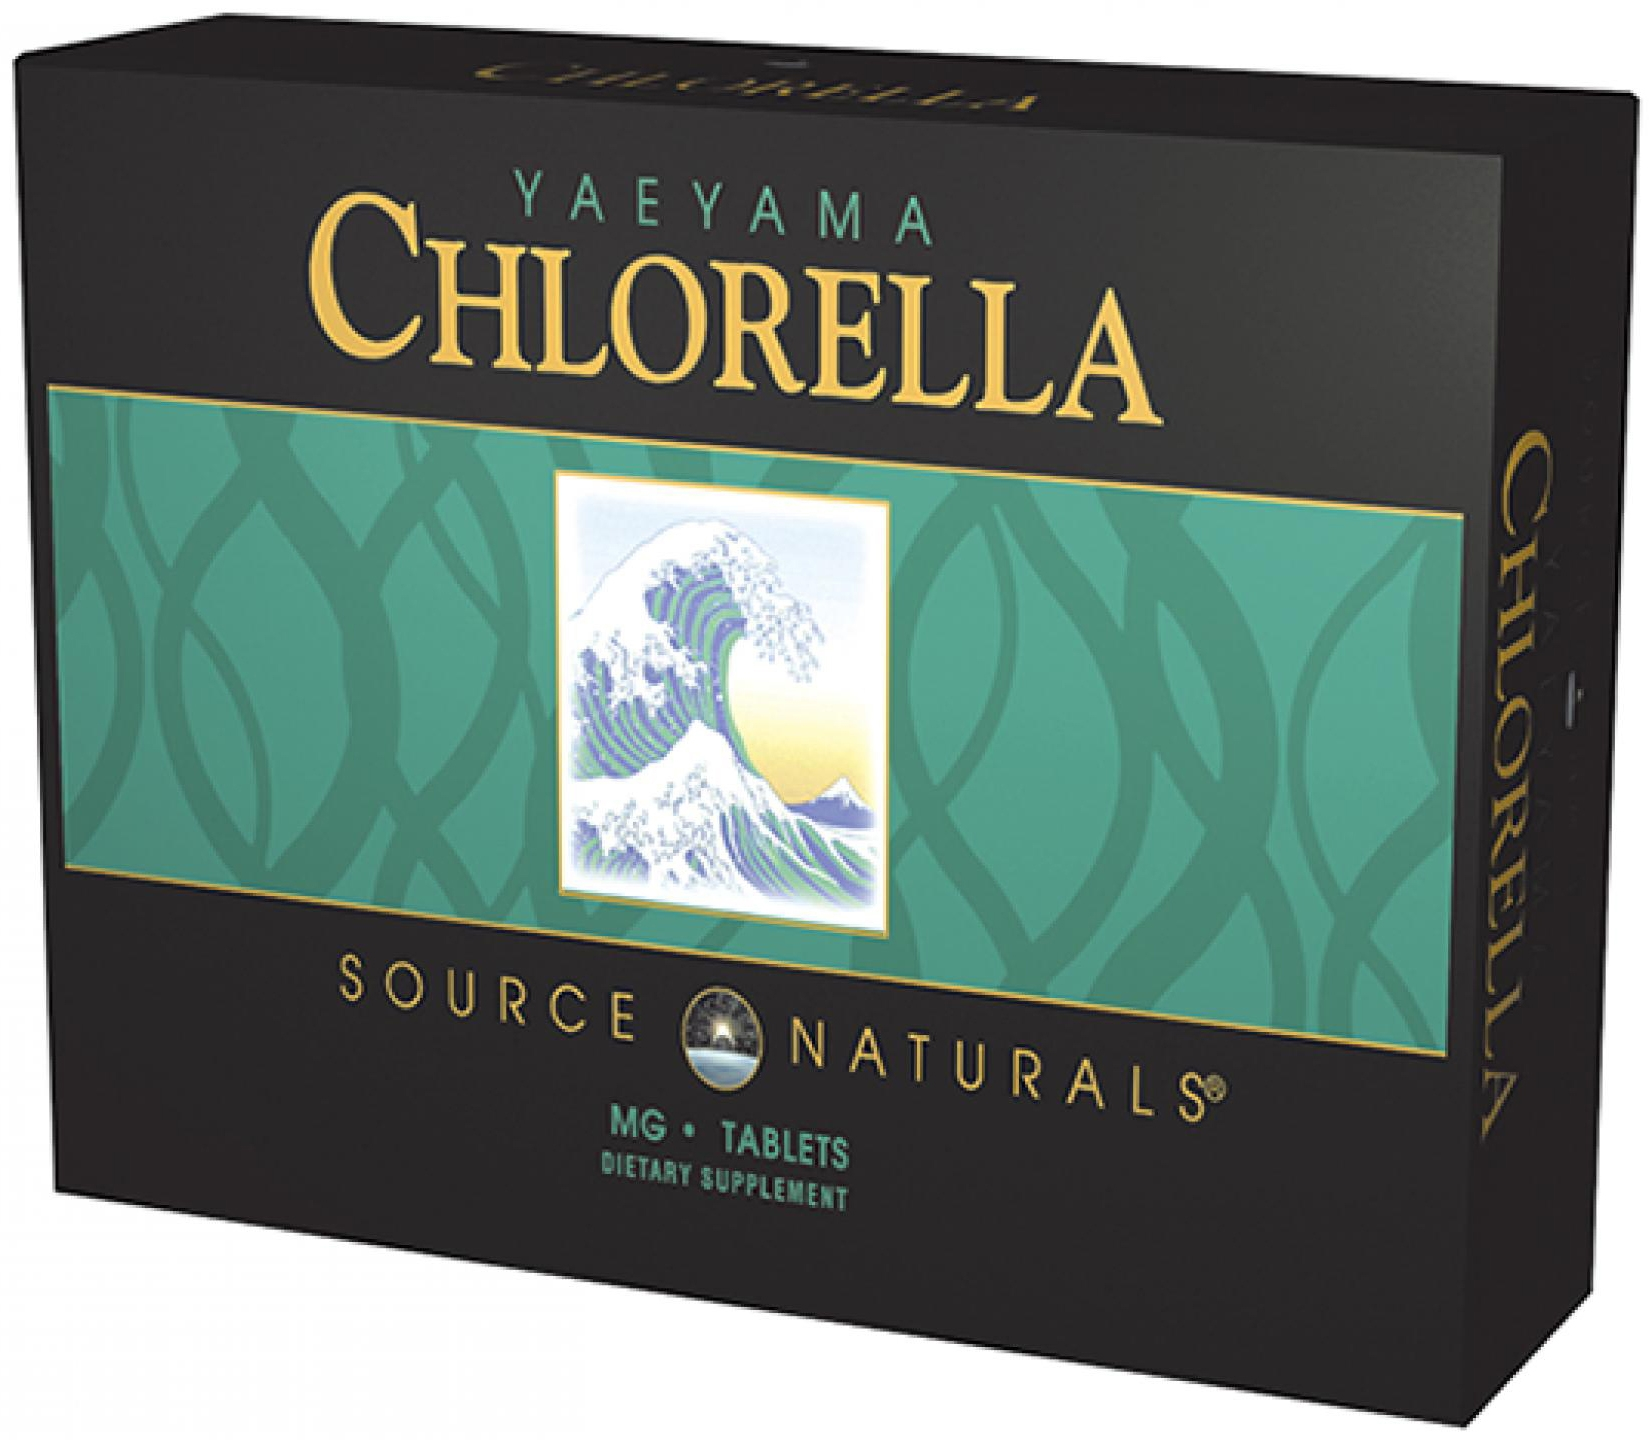 Yaeyama Chlorella Powder 8 oz (226.8 g) by Source Naturals